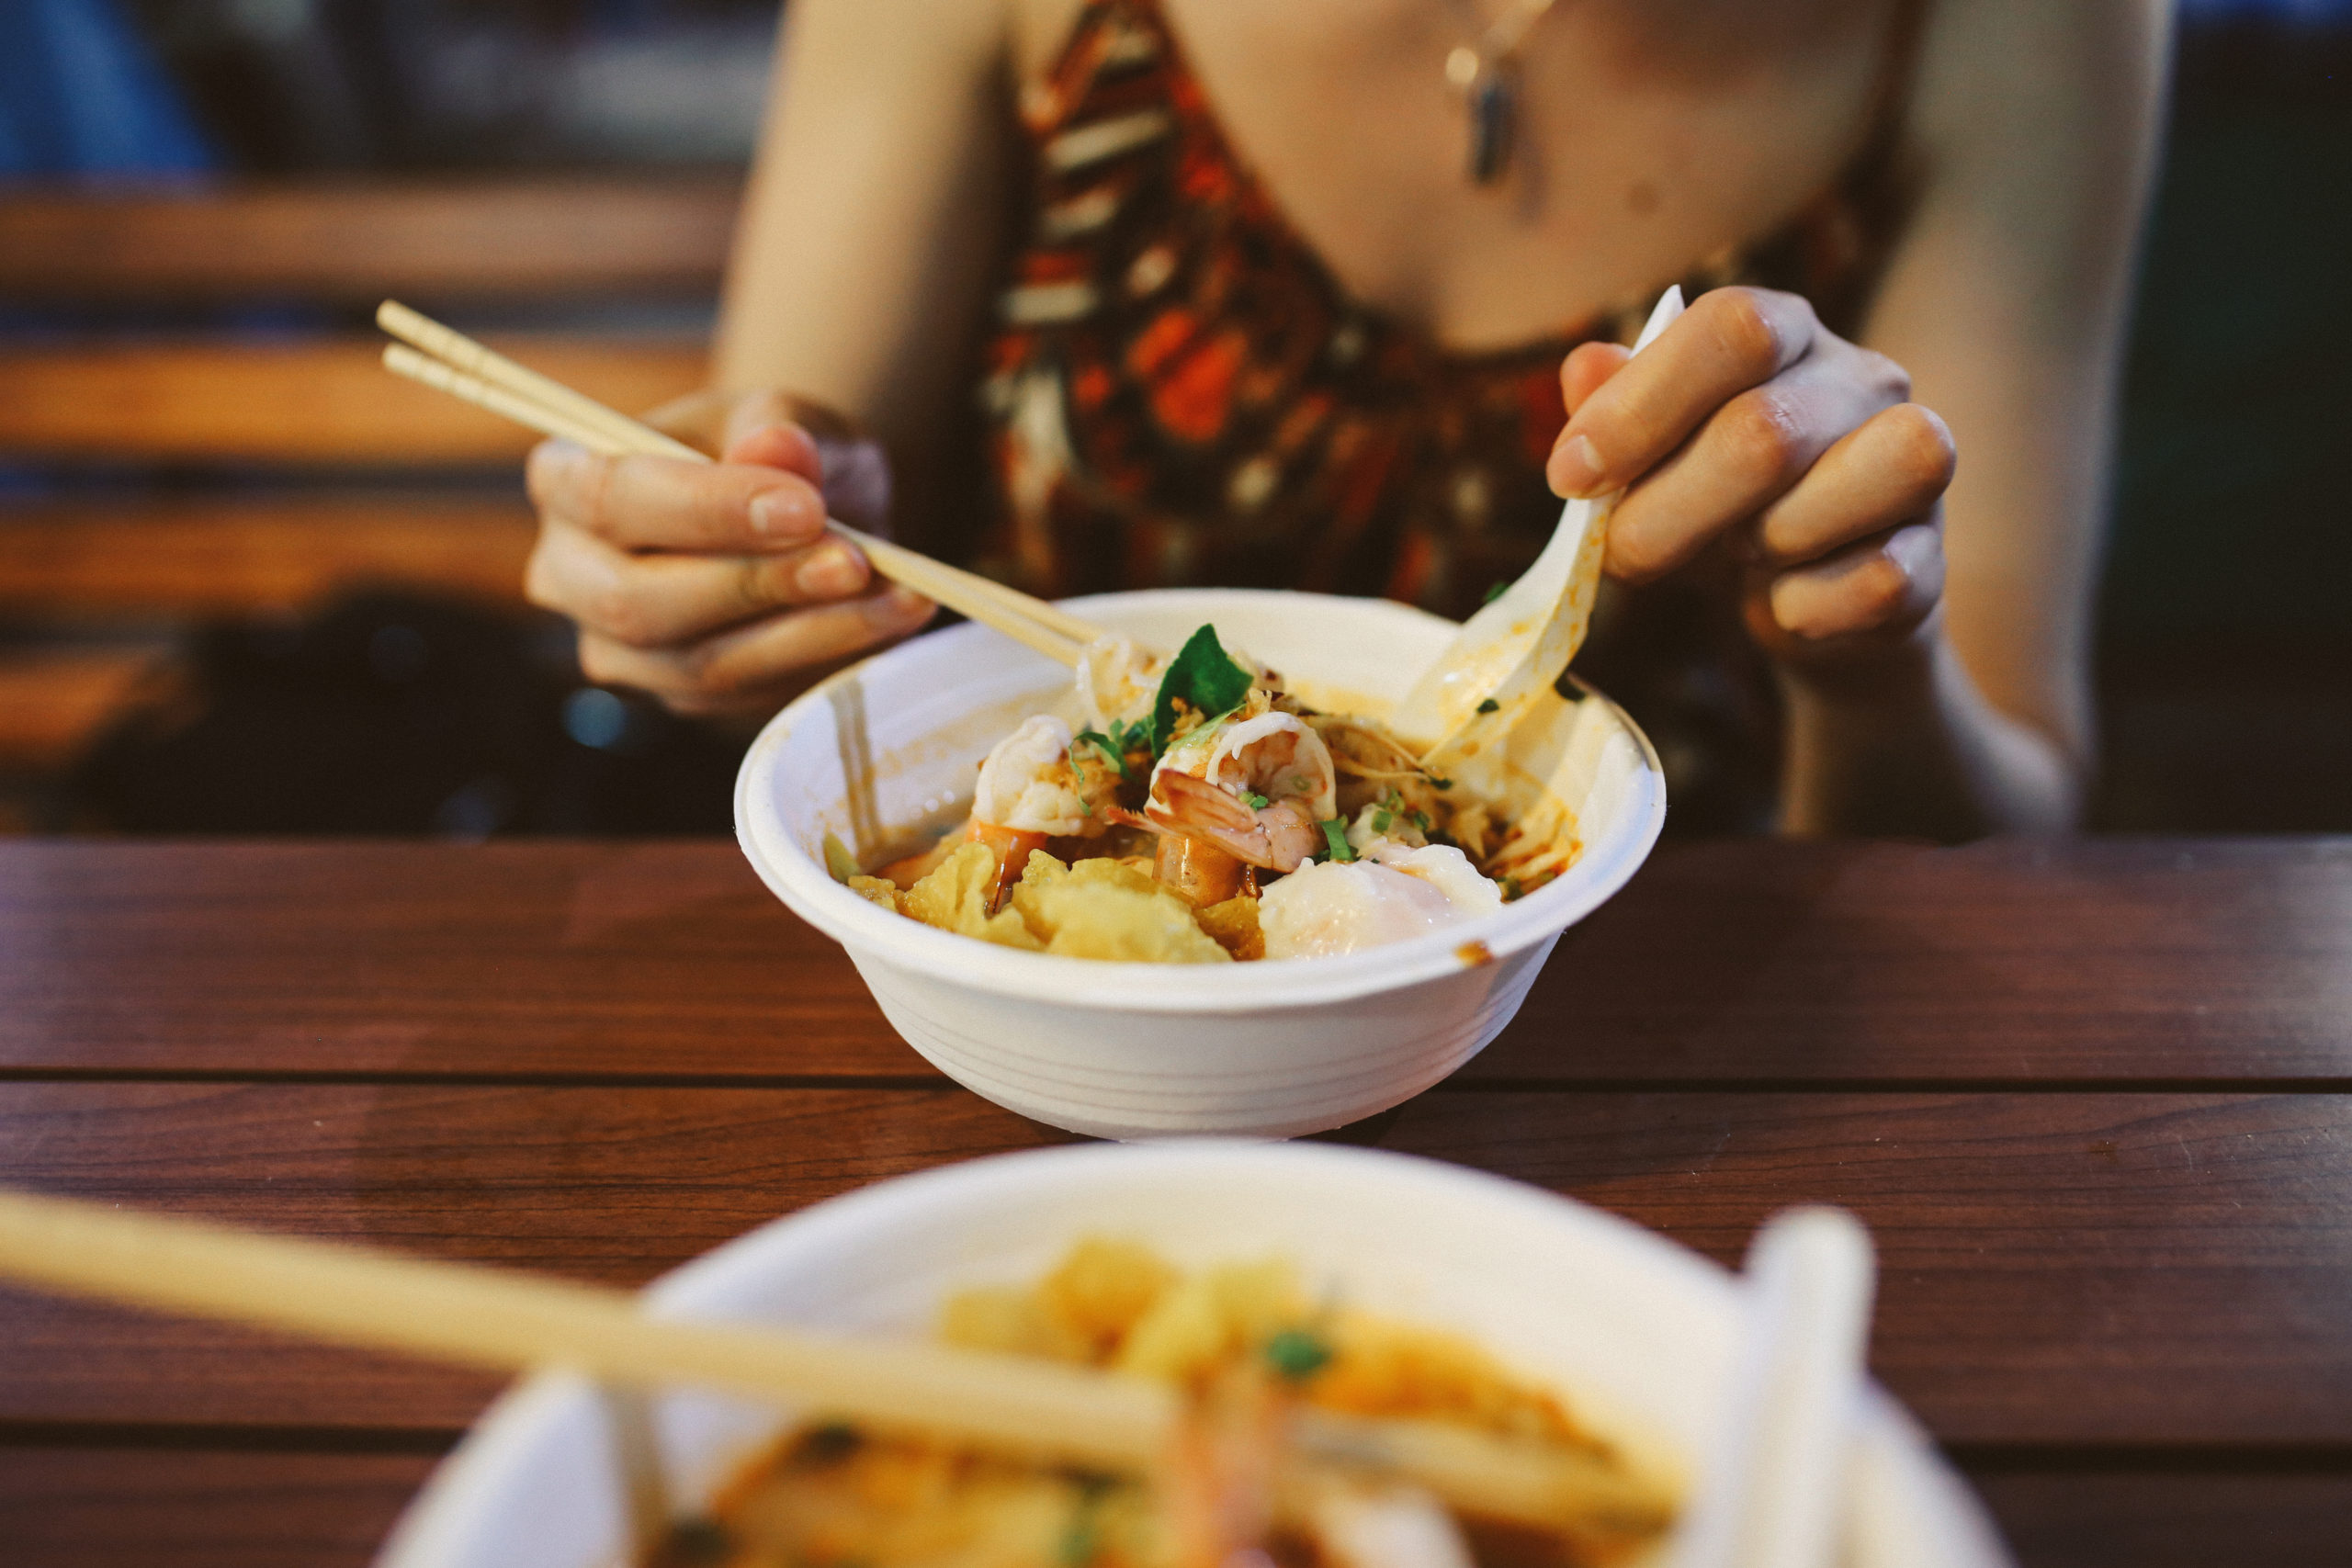 woman eating a bowl of takeout thai food with chopsticks and spoon